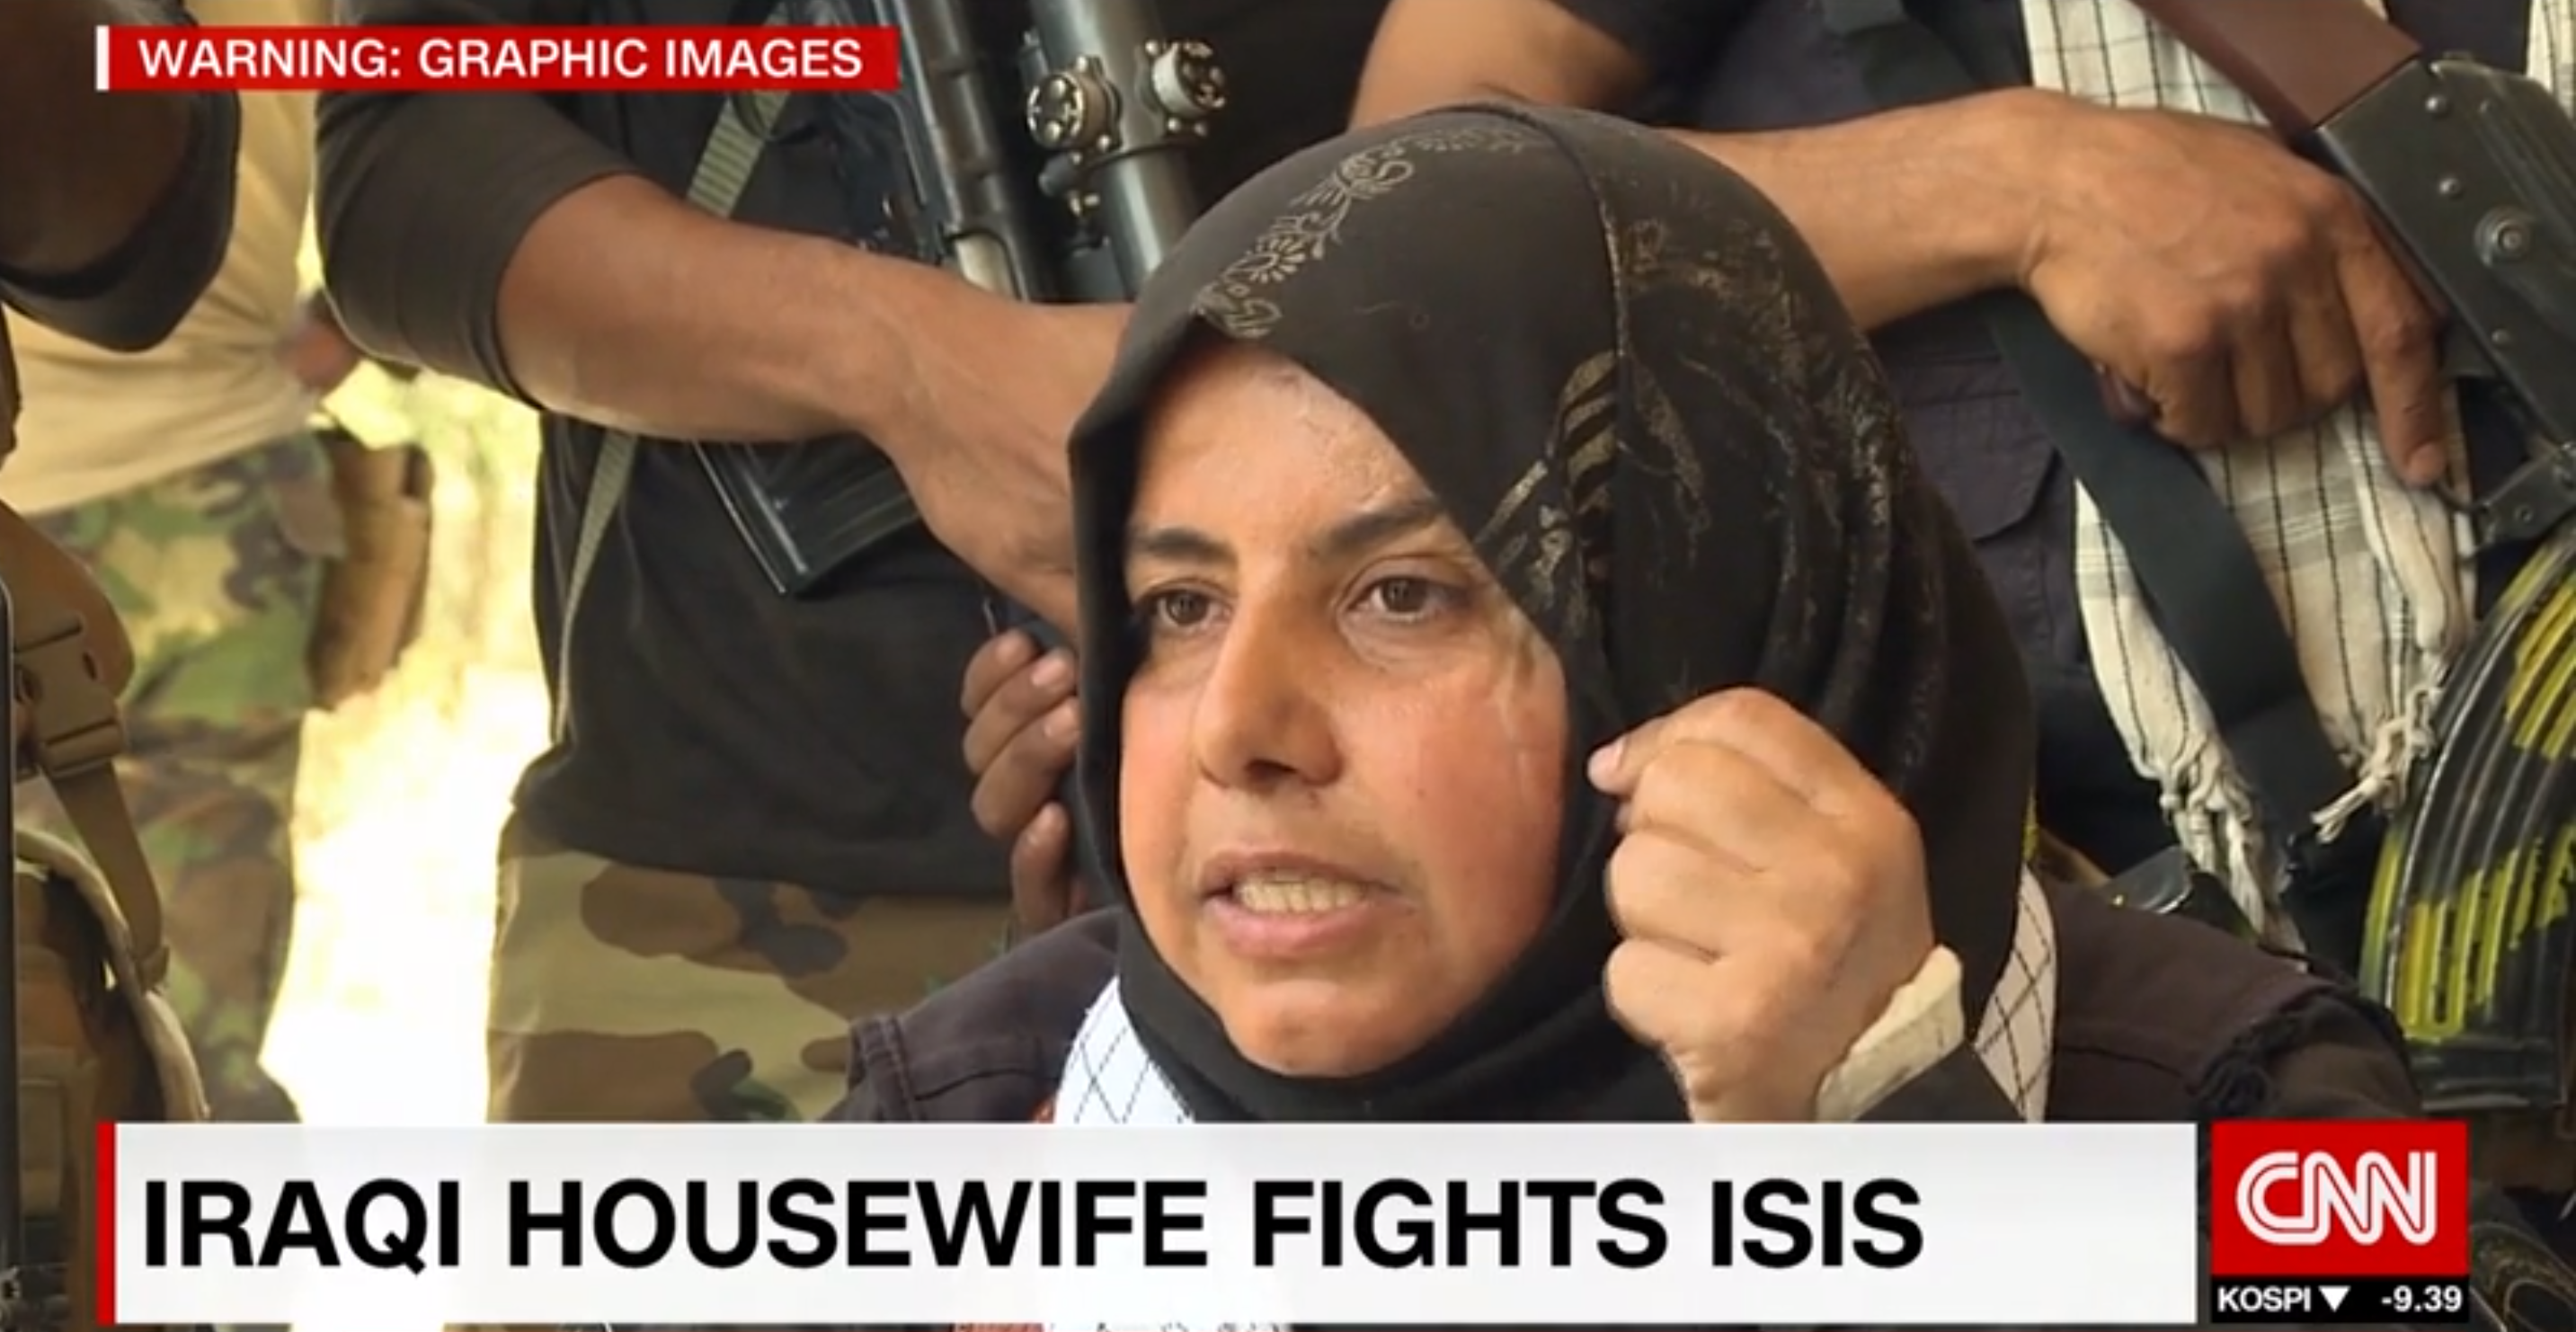 Meet the Iraqi housewife who hunts down and